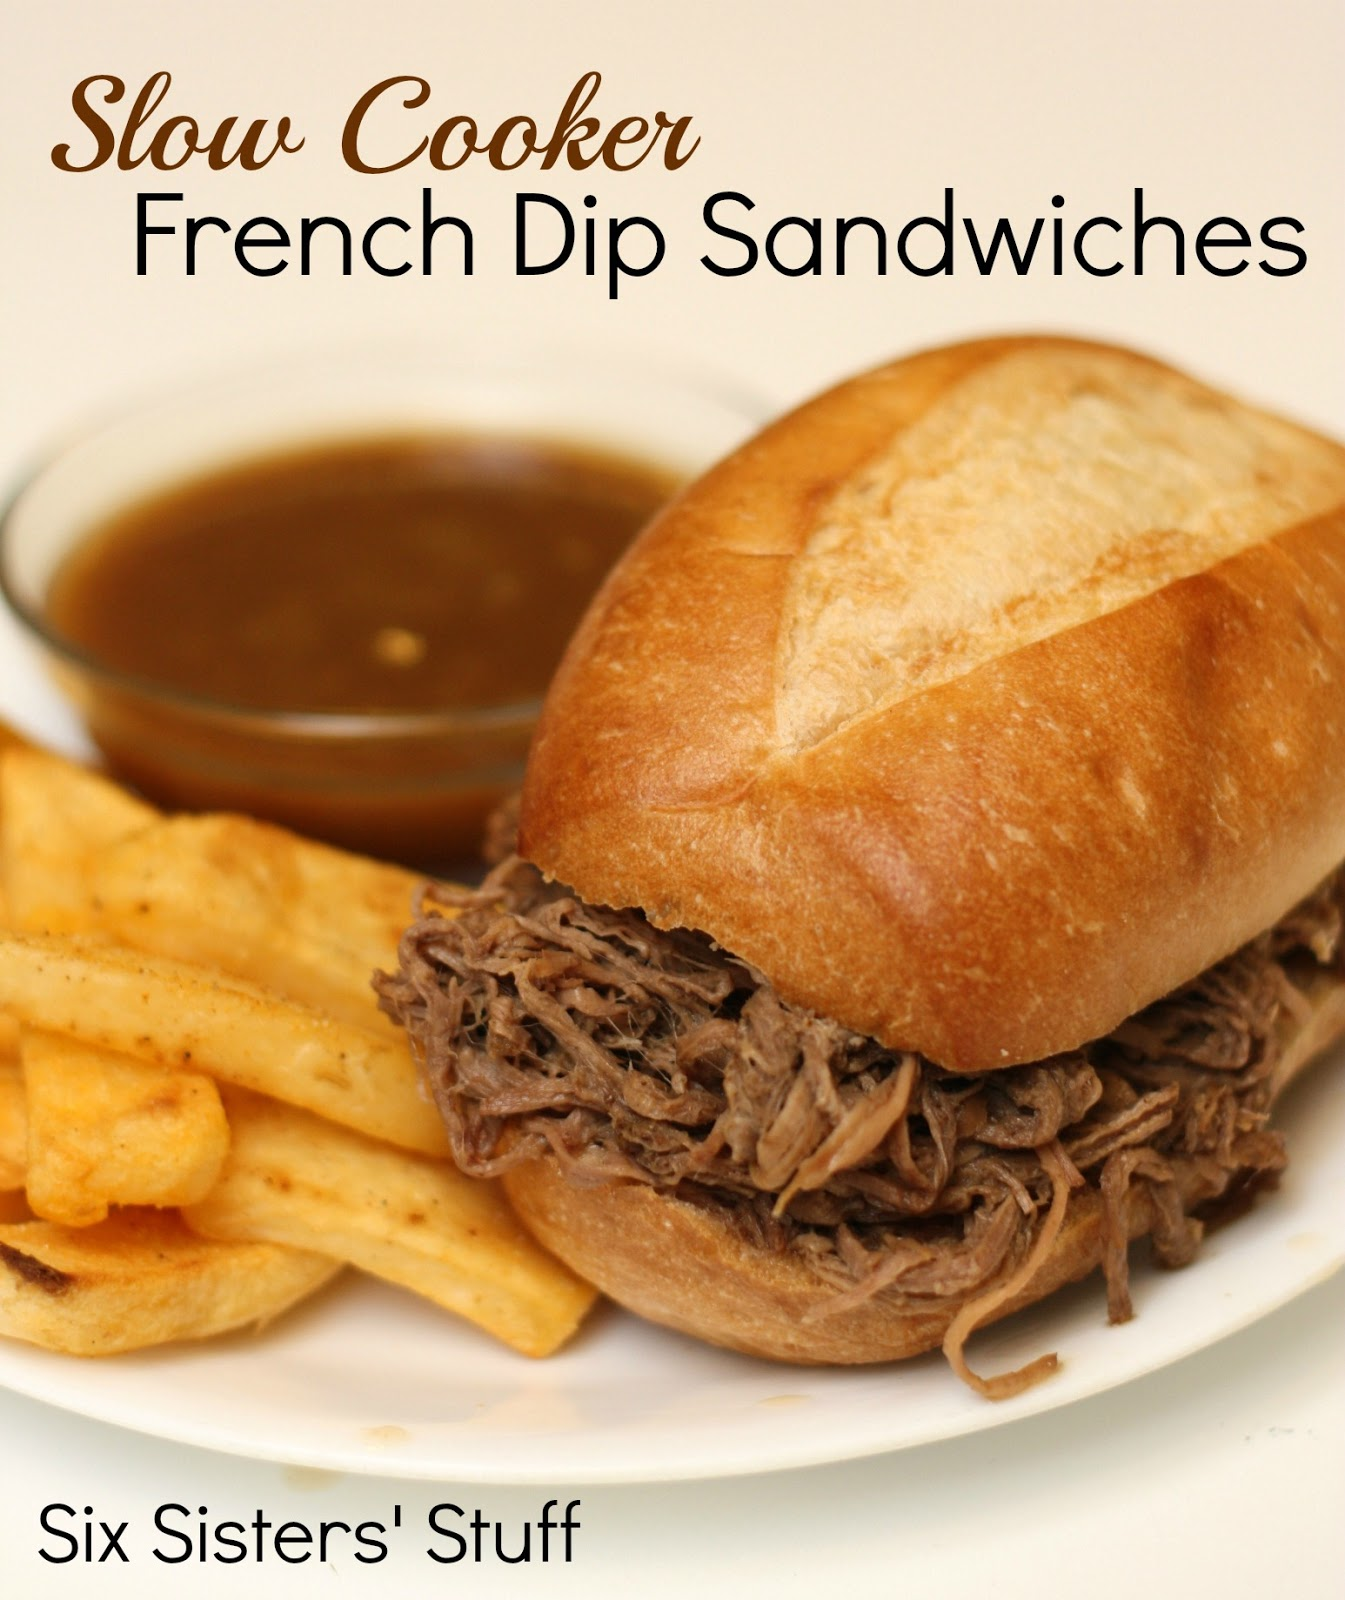 Jun 28,  · The beer in this Slow Cooker French Dip Sandwiches recipe is the secret weapon to this sandwich. Tips for making this the best Slow Cooker French Dip Sandwiches ever: In a large dutch oven, brown the heck out of the beef on both sides and season aggressively.5/5(12).